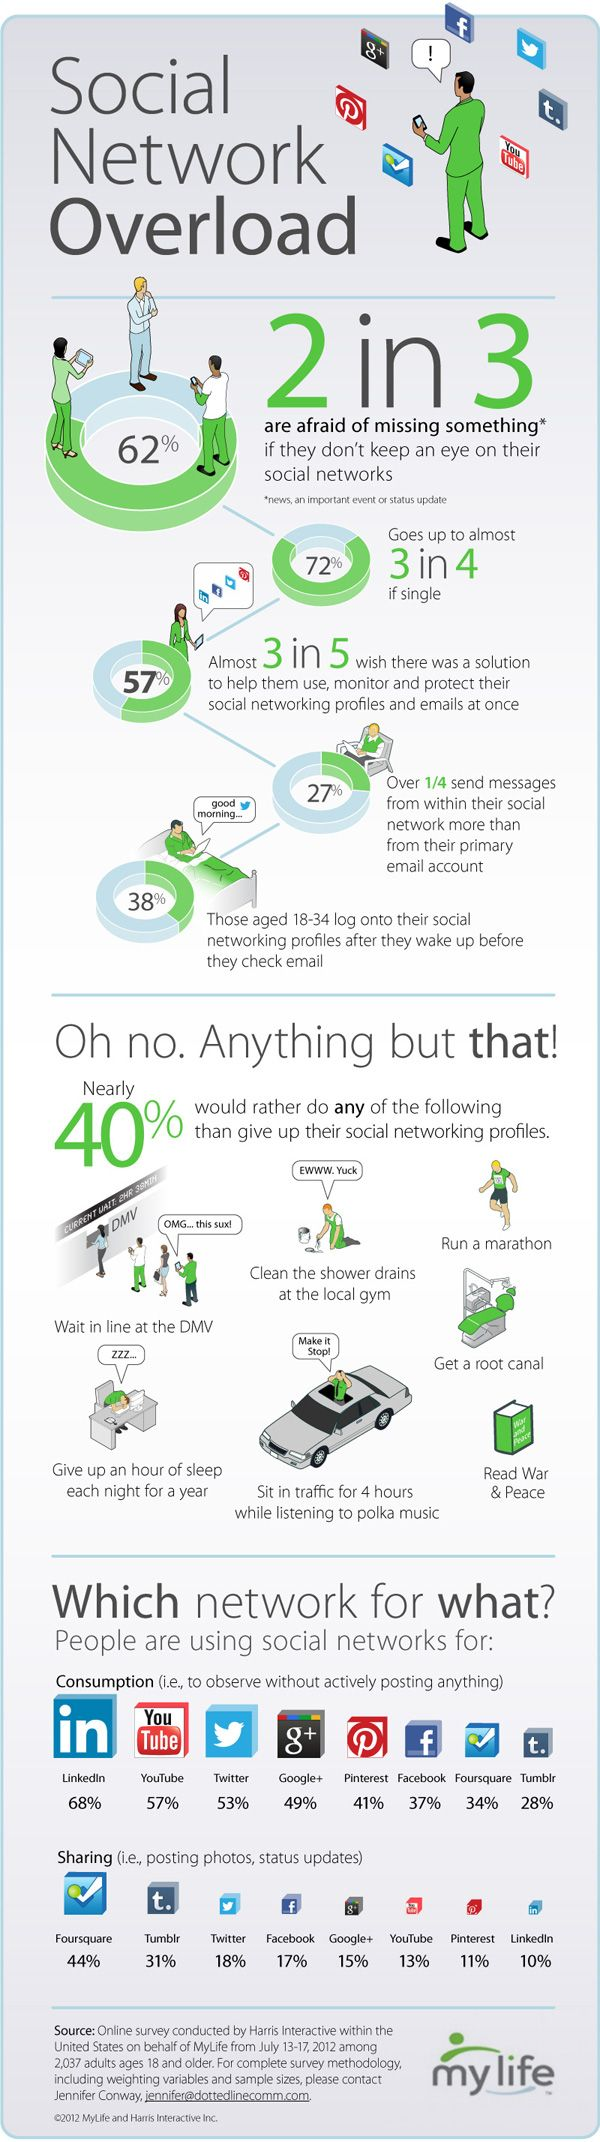 Do You Suffer from Social Network Overload? [INFOGRAPHIC]